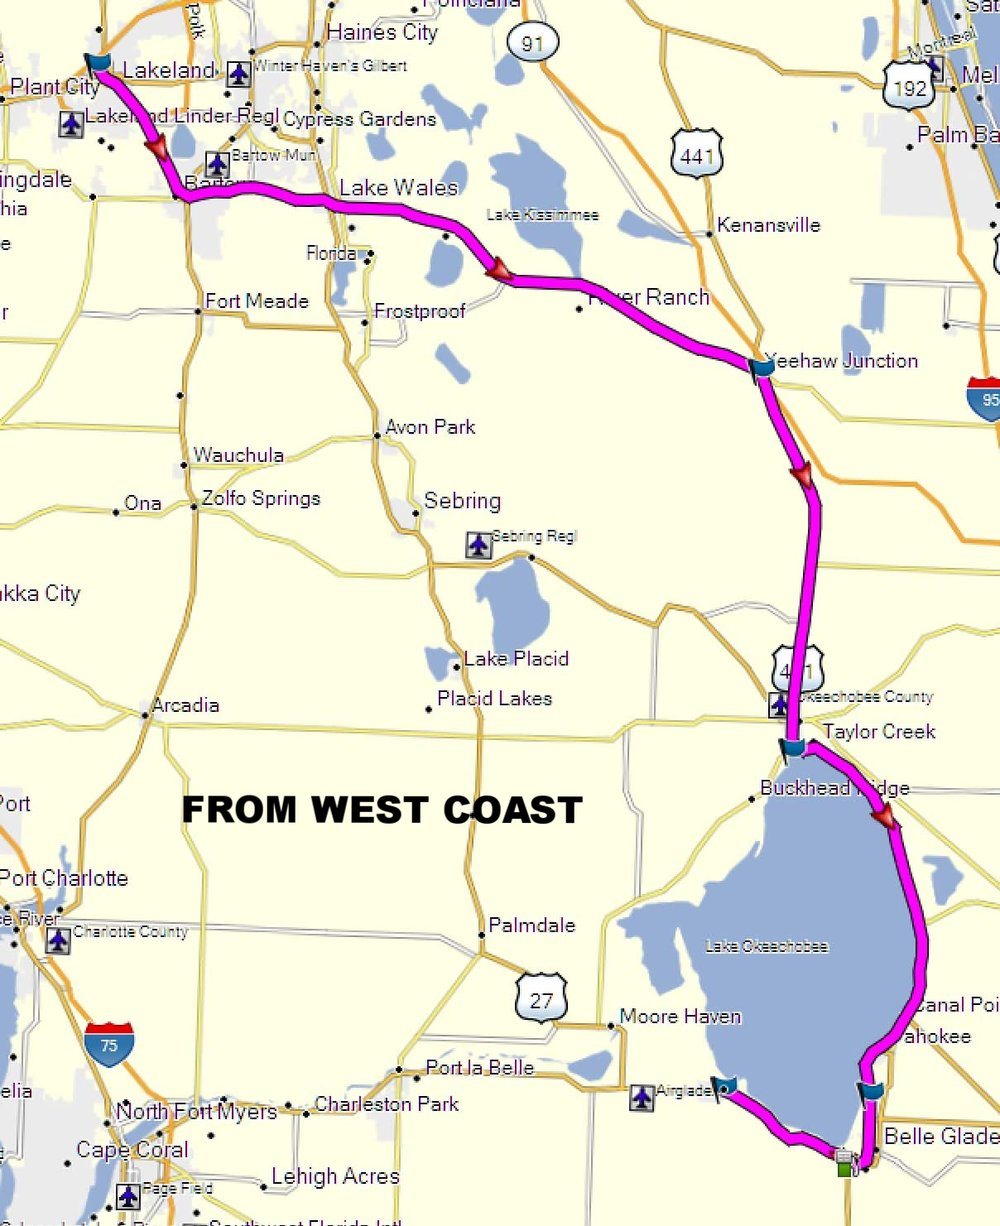 West Coast Chapter Map to Scotty's Tiki Bar Clewiston FL.jpg